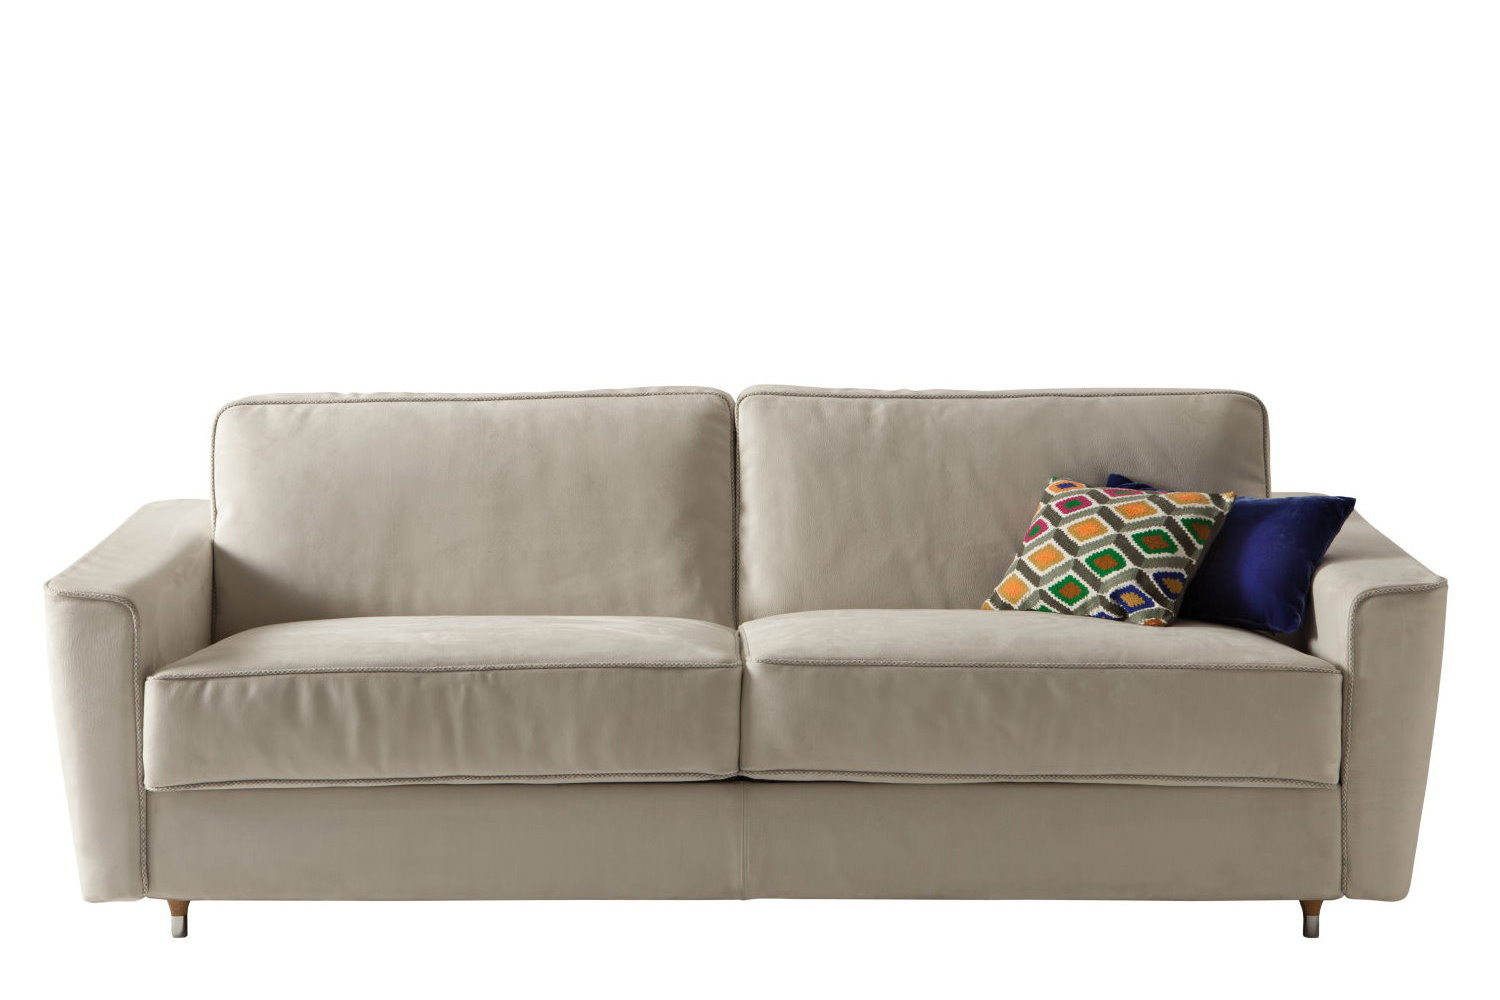 Petrucciani Made In Italy Sofa Bed